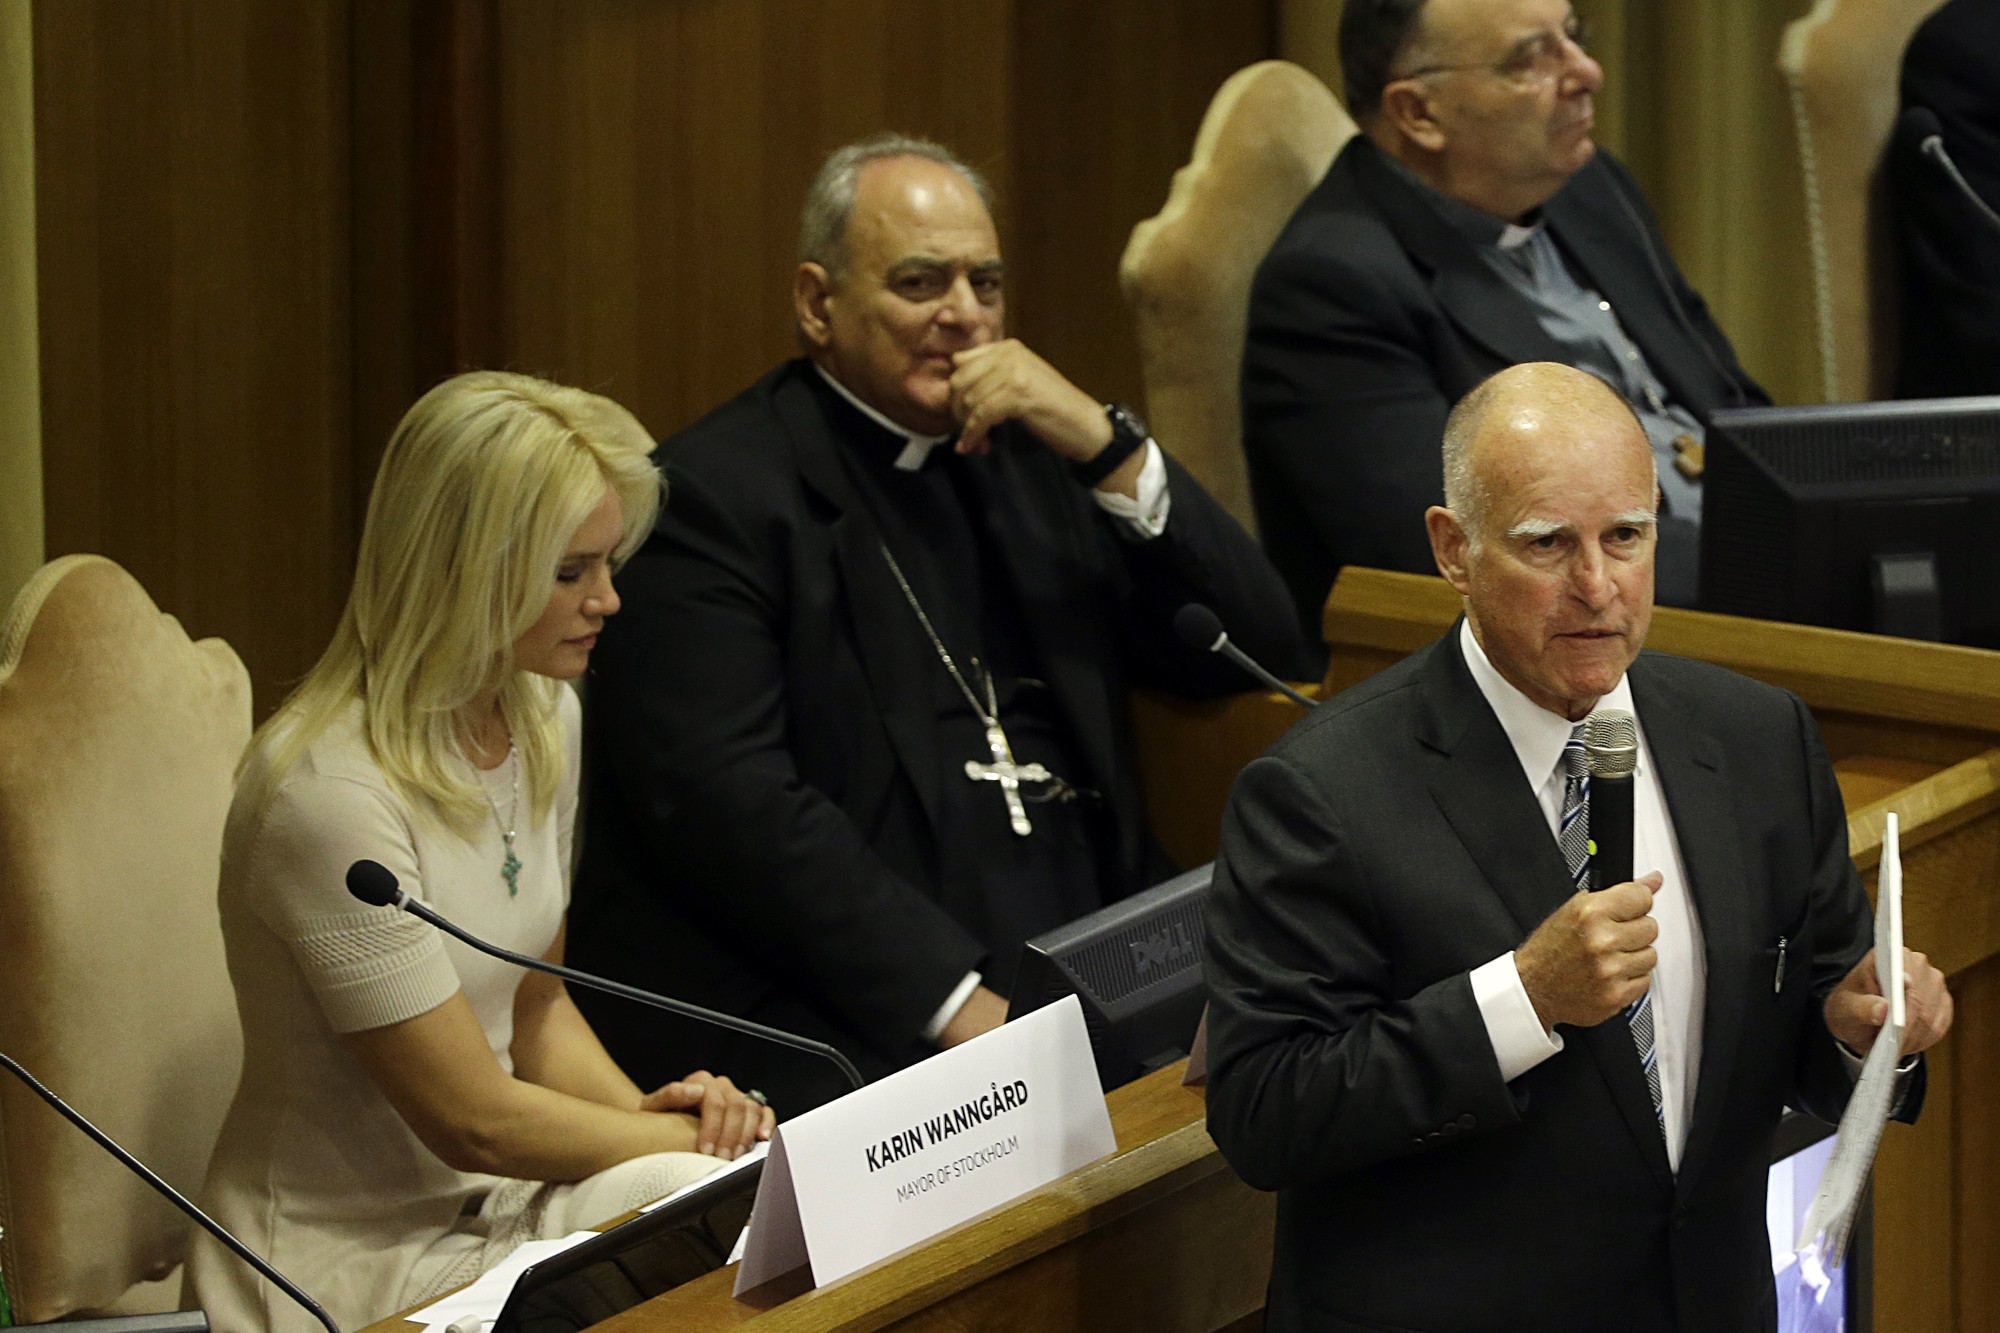 Gov. Jerry Brown speaks at a Vatican conference on climate change in July. (Gregorio Borgia / Associated Press)